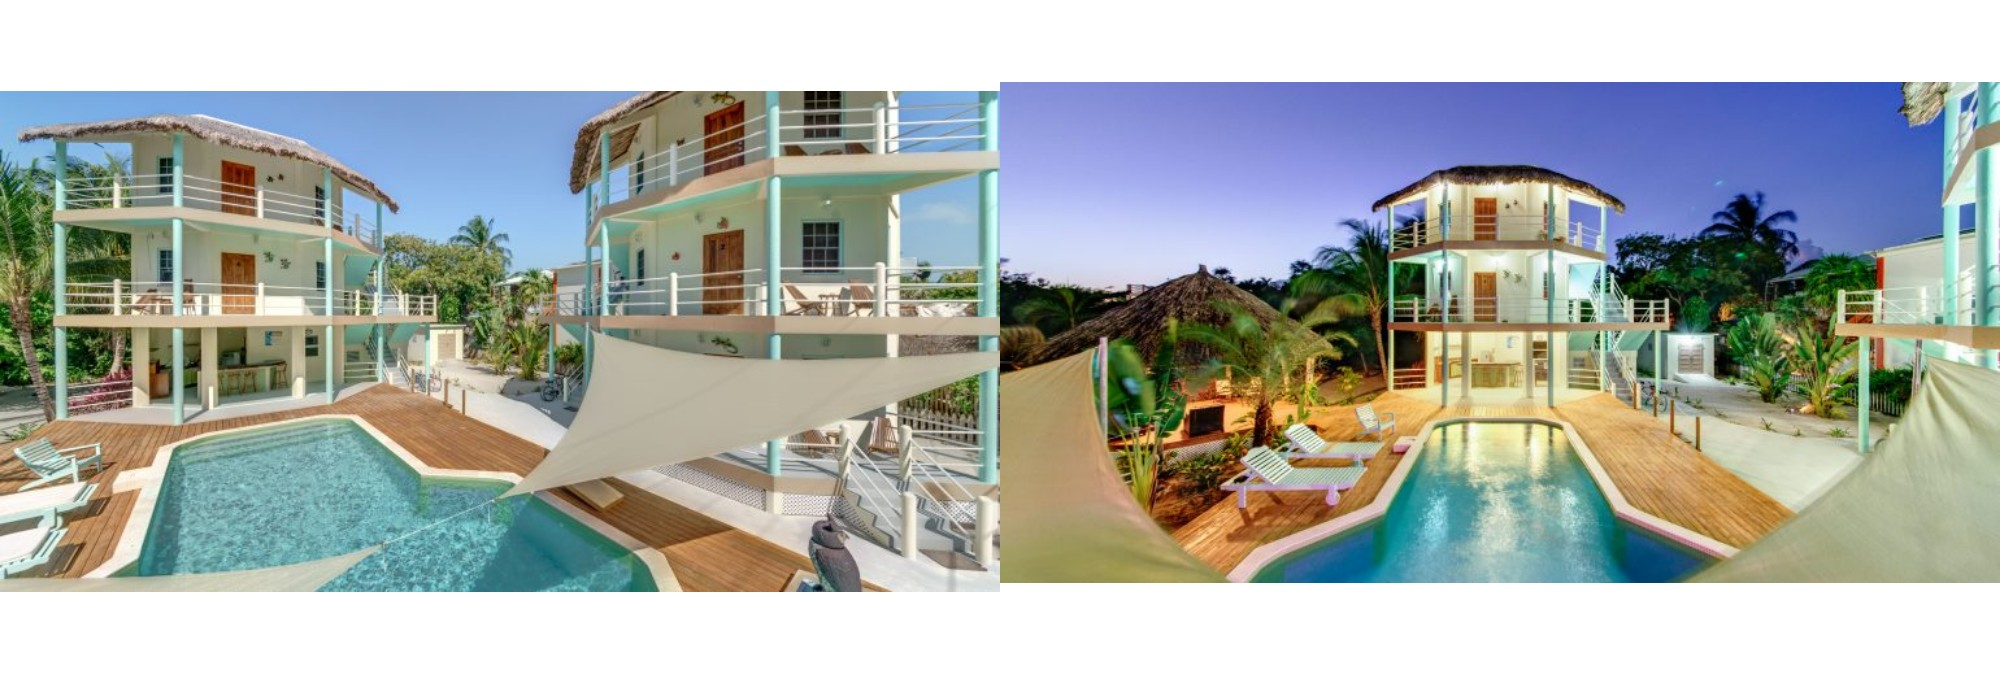 Caye Caulker Boutique Hotel for Sale in Belize